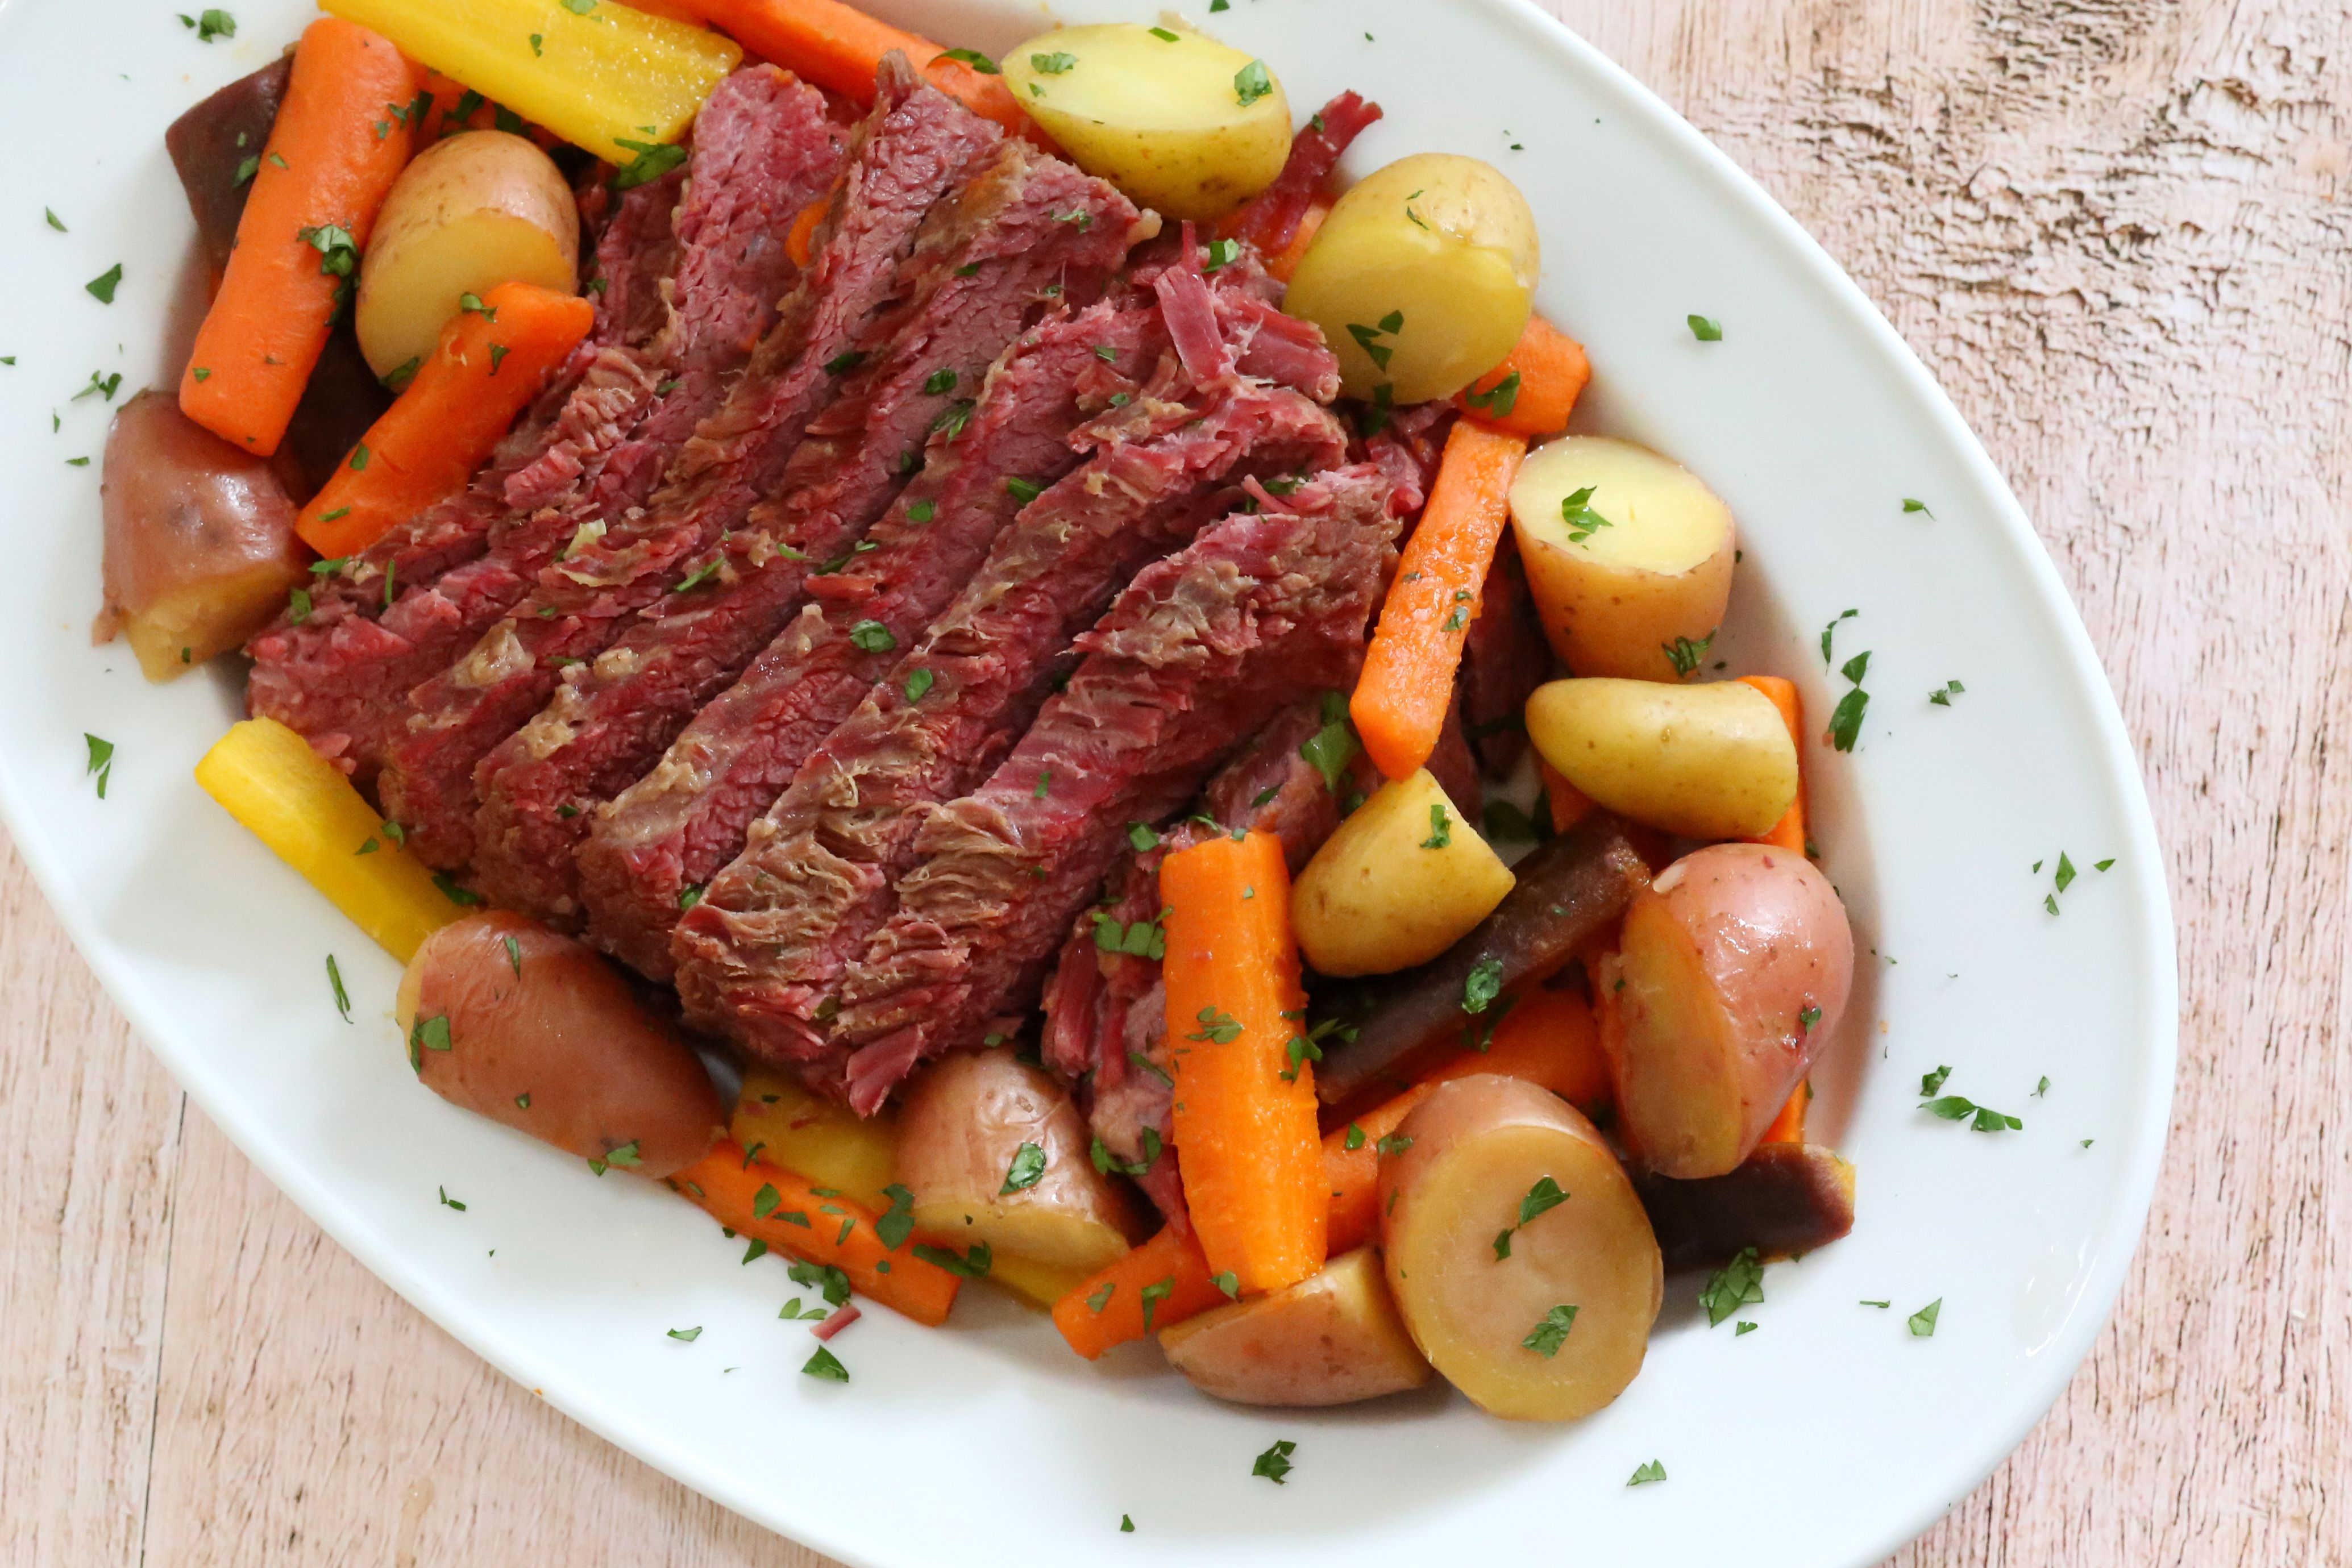 Instant Pot corned beef with vegetables.